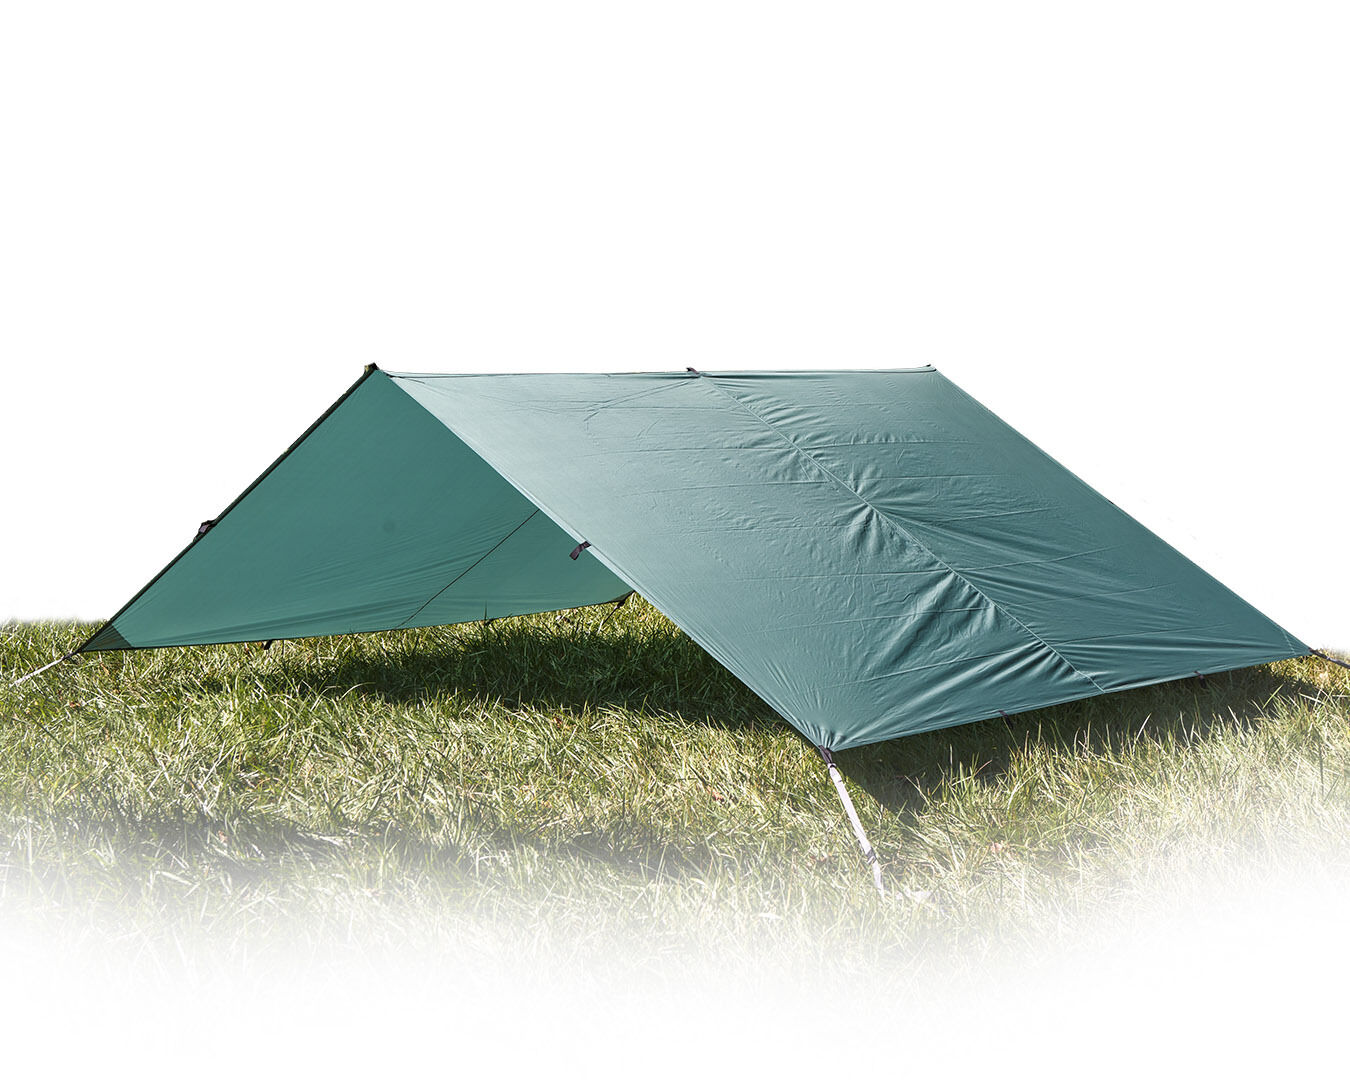 Aqua Quest Guide Sil Tarp Basha - 100% Waterproof Ultralight Large 4 x 3 m Green